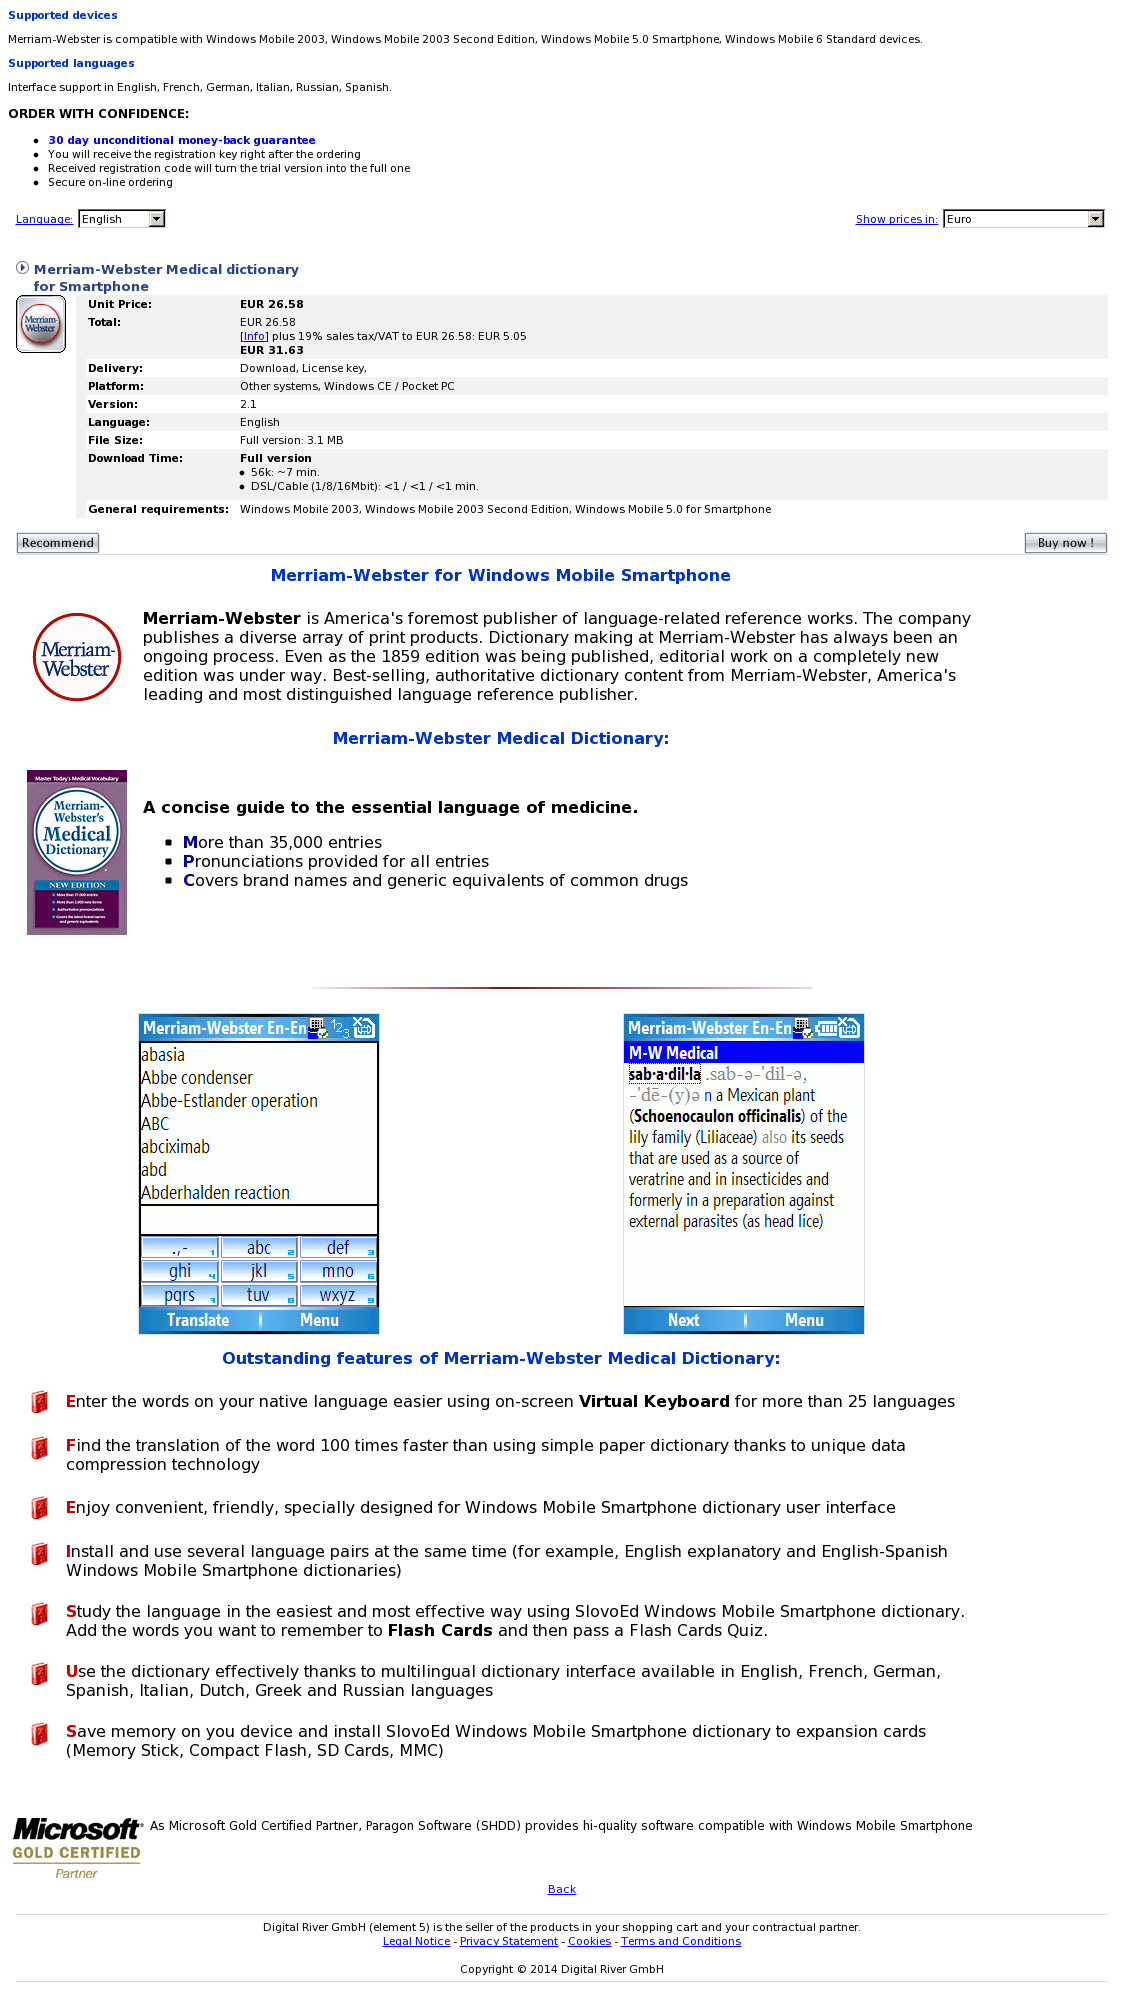 Merriam-Webster Medical dictionary for Smartphone